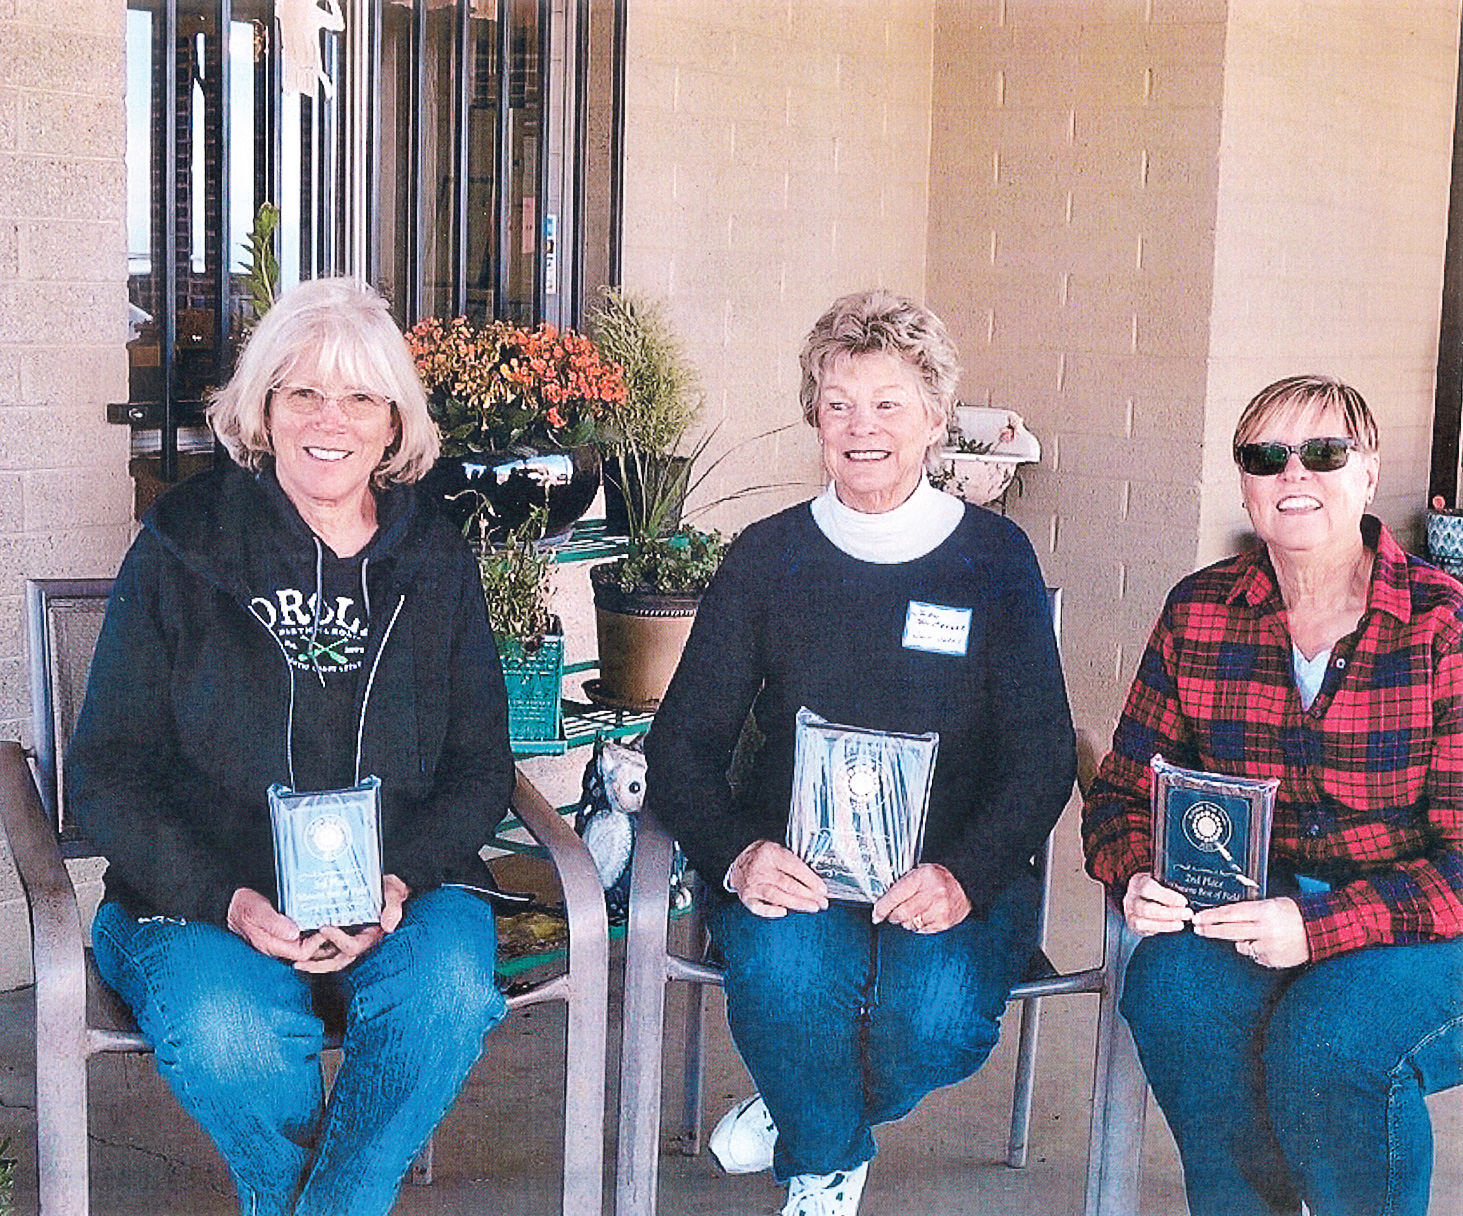 Top women shooters: second place, Lori Klug, Quail Creek, 42; first place, Judy Tenbroeck, Sun Lakes, 65; and third place, Vicki Ray, PebbleCreek, 42